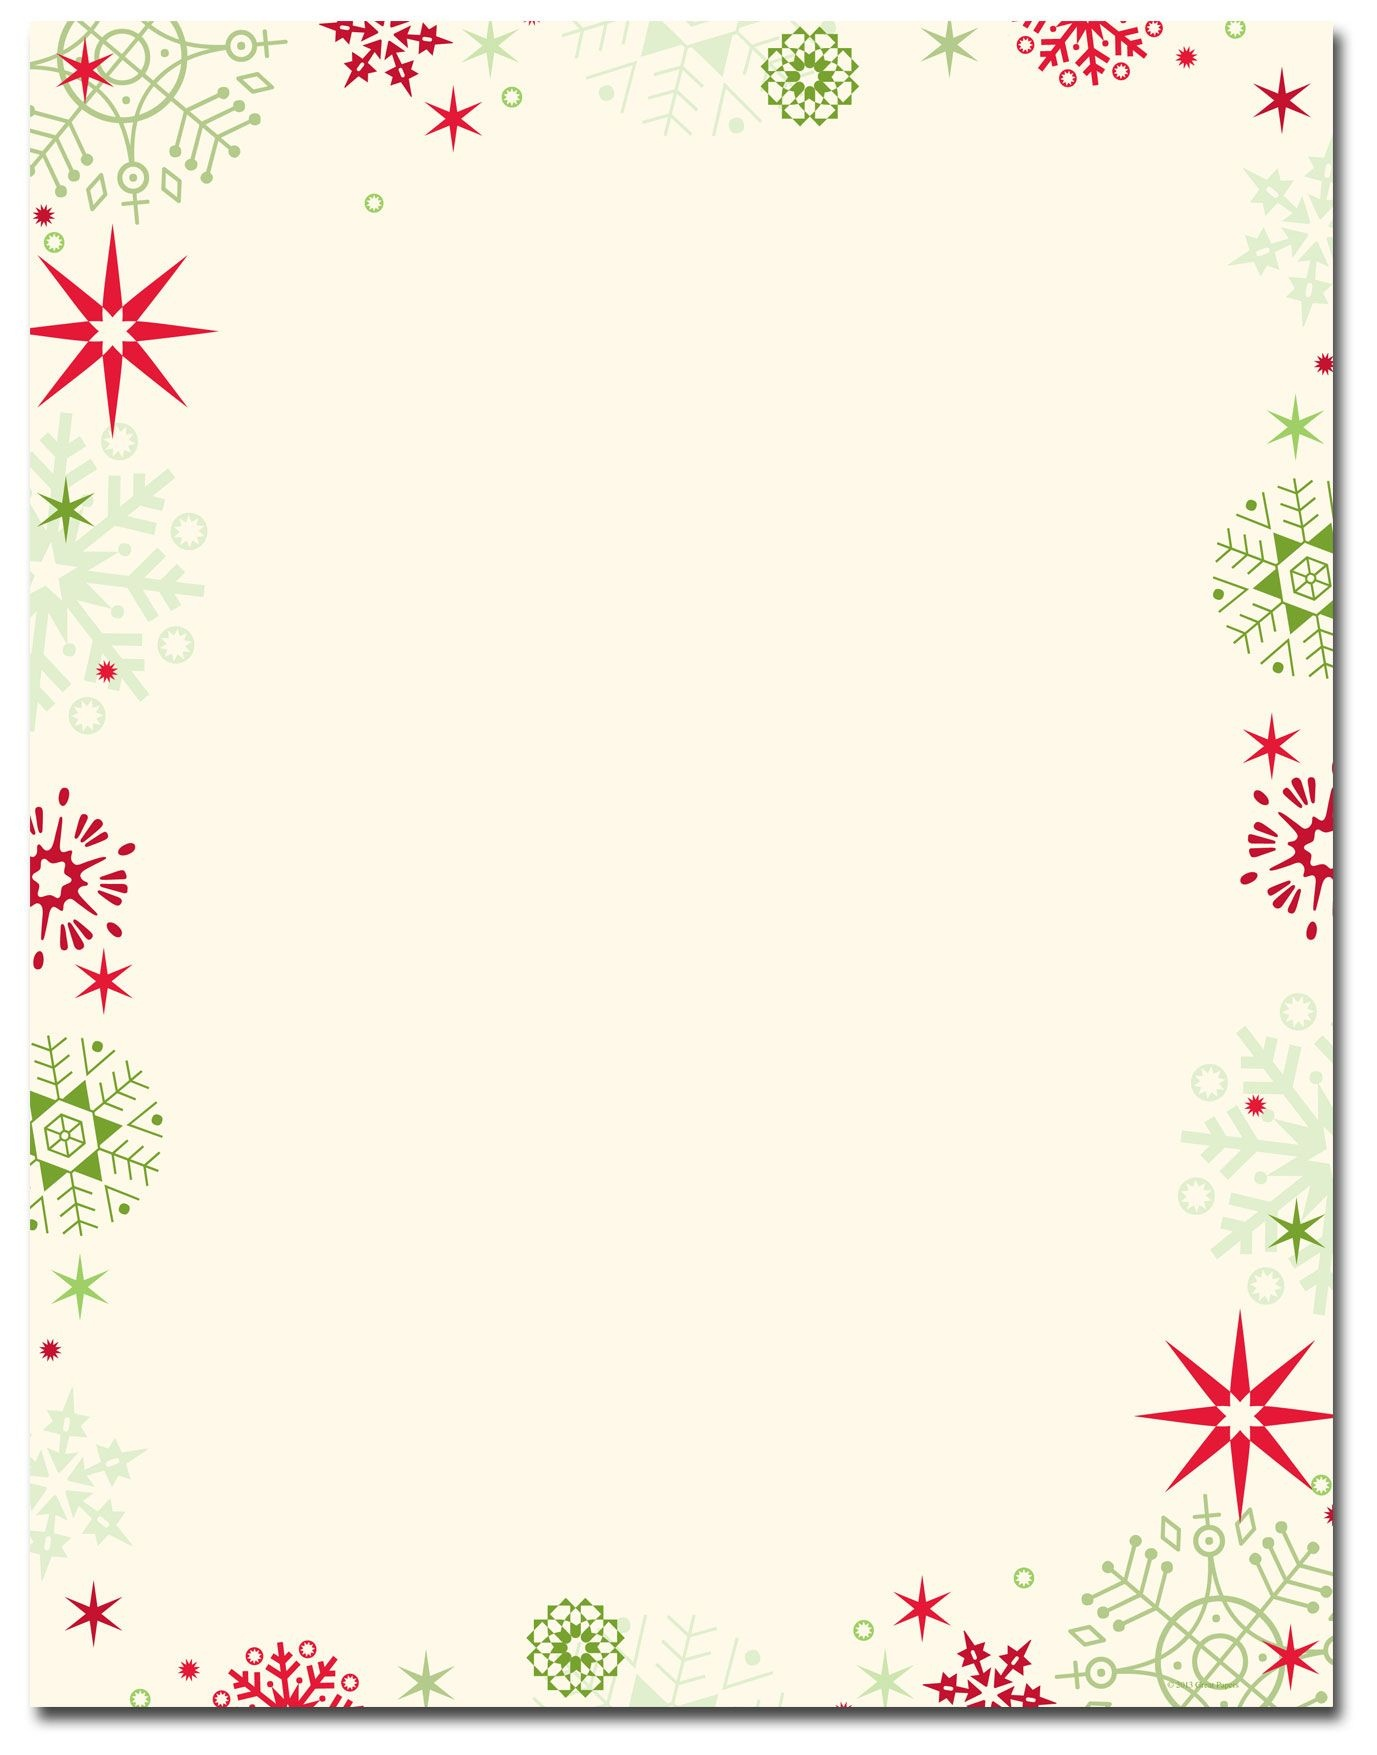 Red & Green Flakes Letterhead | Holiday Papers | Christmas - Free Printable Letterhead Borders